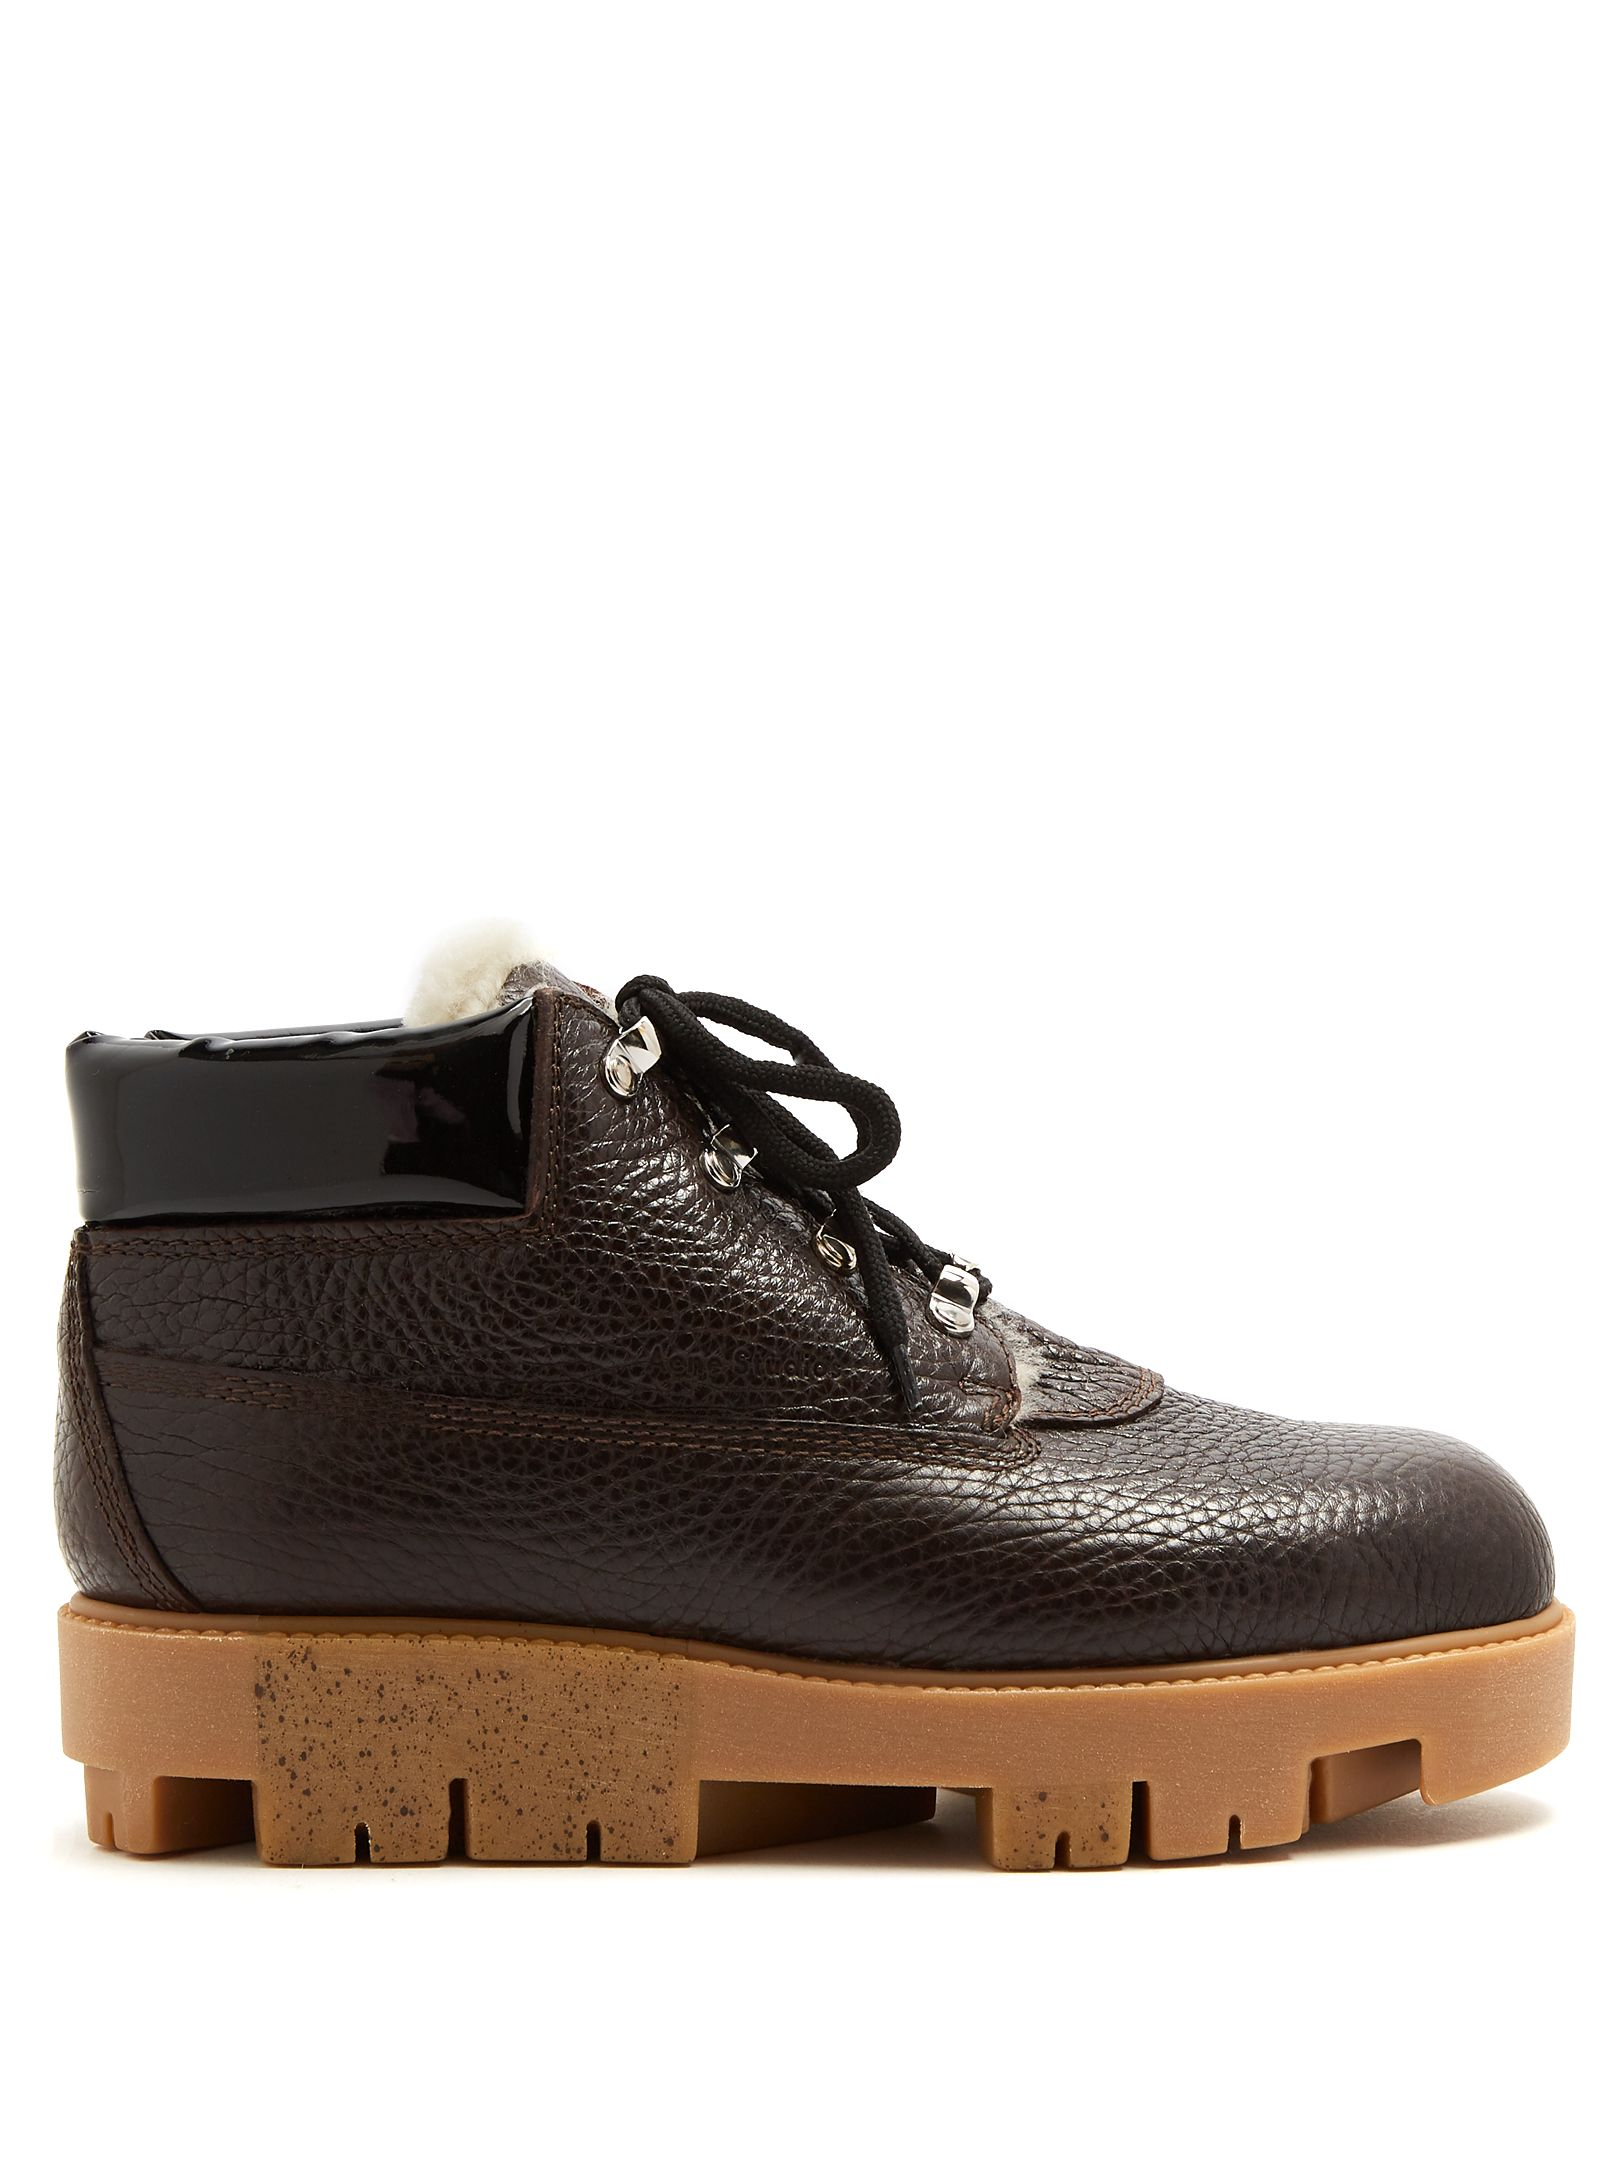 5c8b3f240dce ACNE STUDIOS TINNE TRACK-SOLE LEATHER ANKLE BOOTS.  acnestudios  shoes